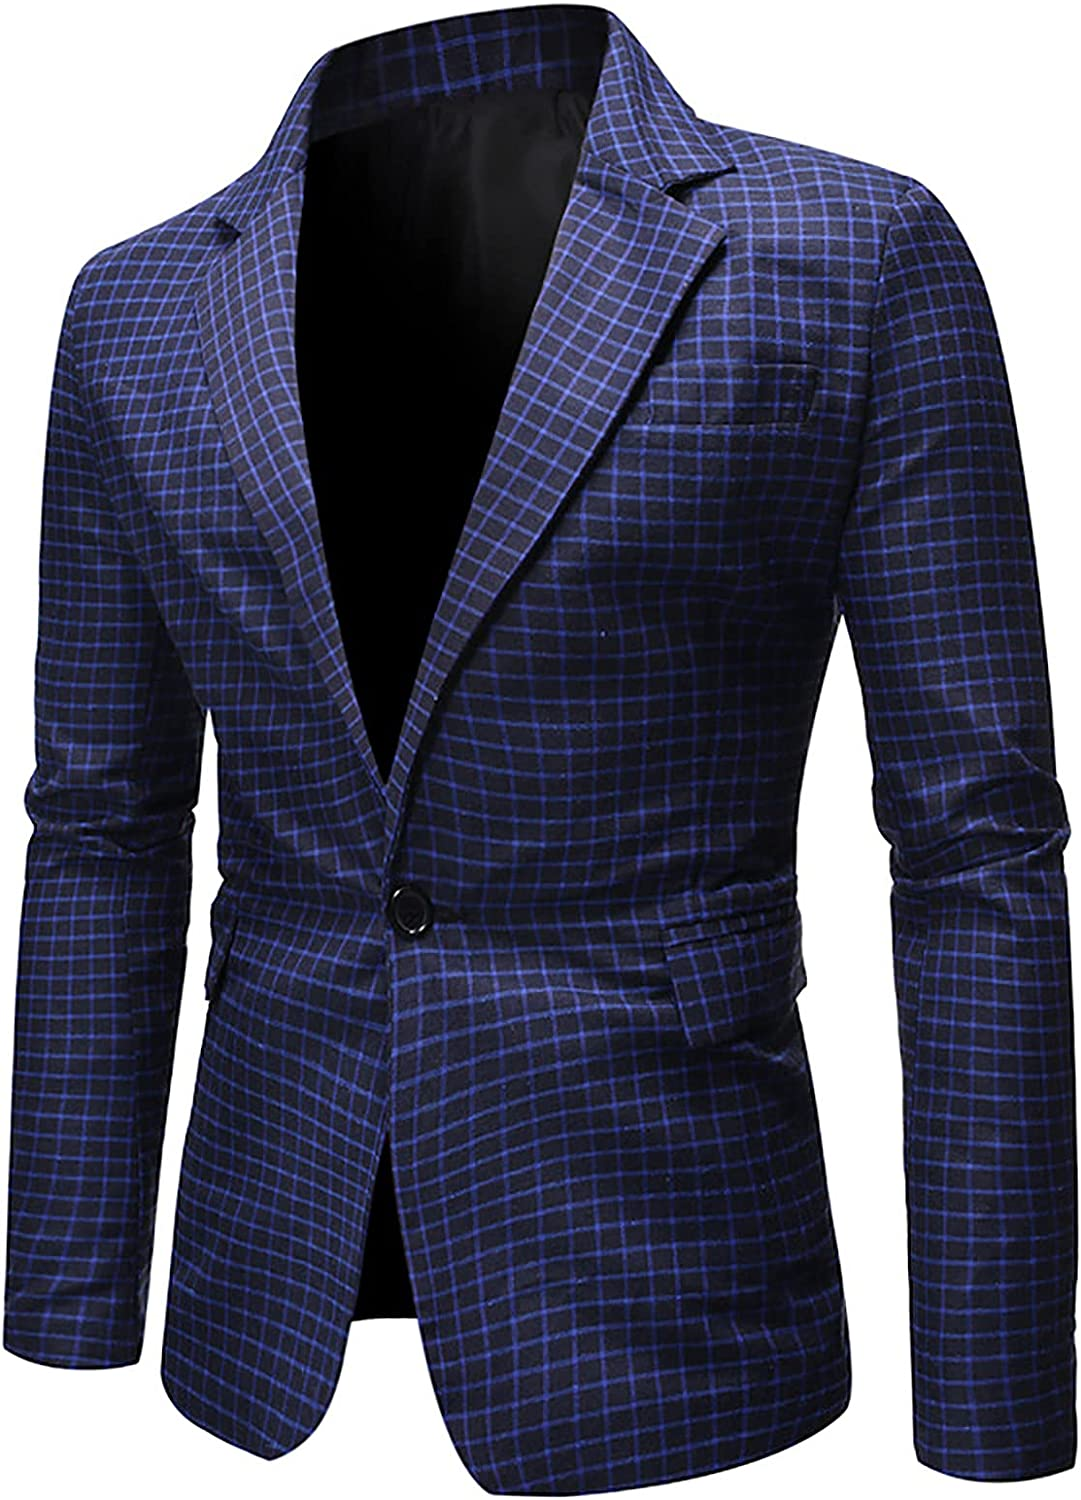 Mens Business Office Blazer One Button Plaid Tuxedo Classic Fit Separate Coat Dinner Jacket, Evening, Wedding, Prom